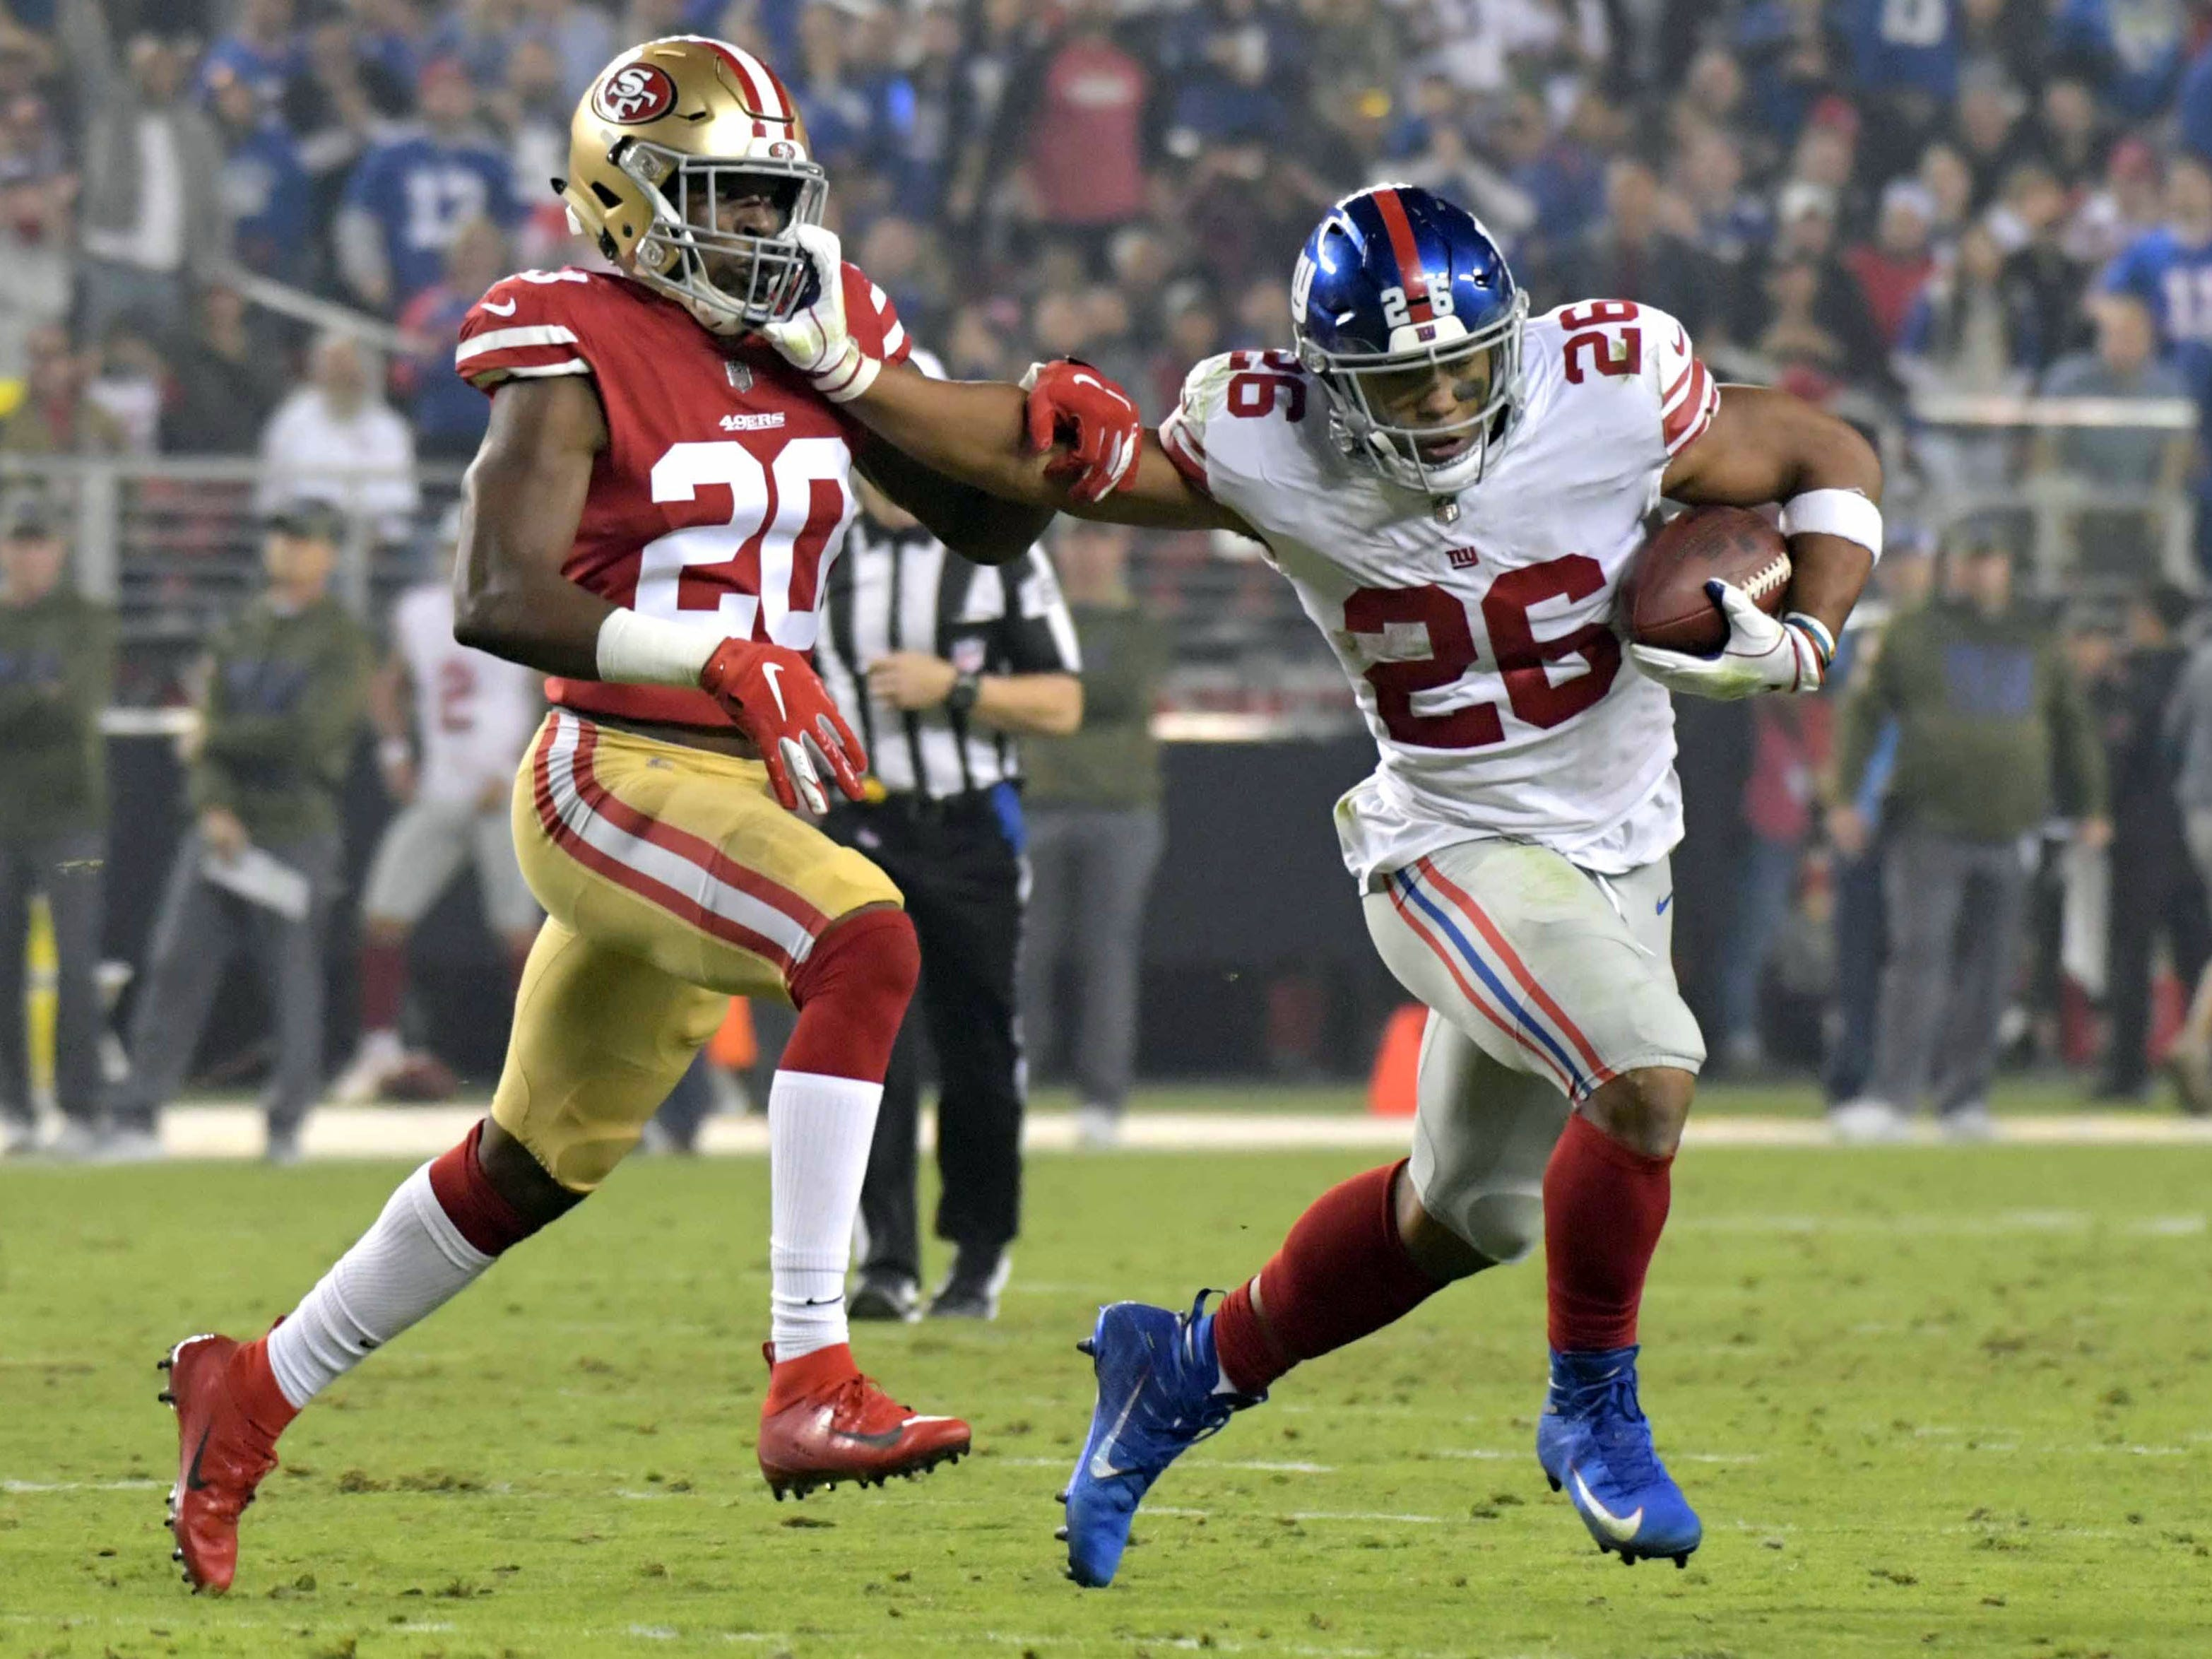 NY Giants: 5 takeaways from Monday night's 27-23 comeback victory over 49ers